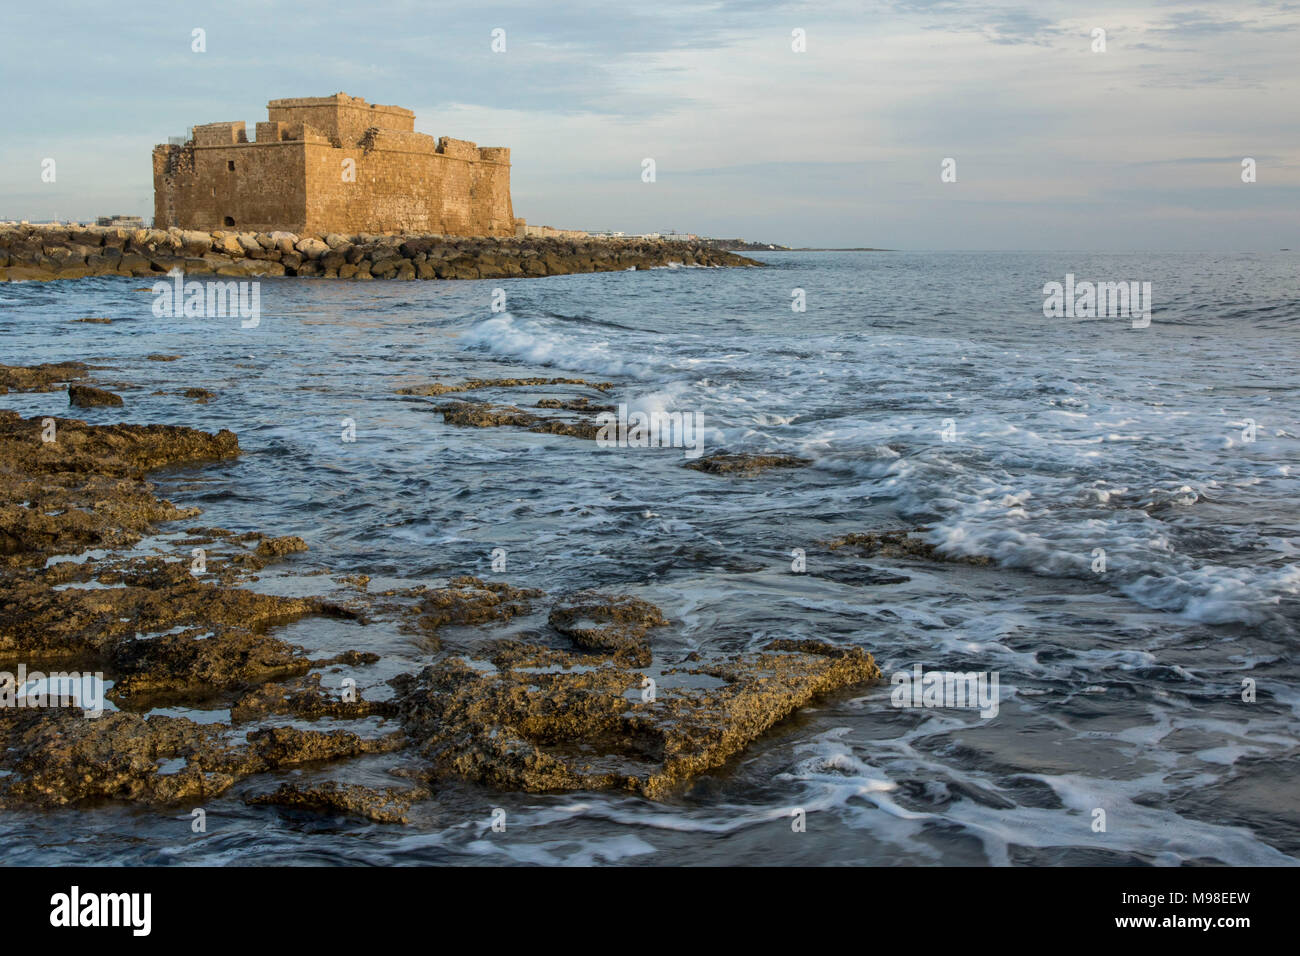 Paphos castle (fort)  in paphos harbour kato paphos, from the mediterranean coast of cyprus, paphos, europe - Stock Image